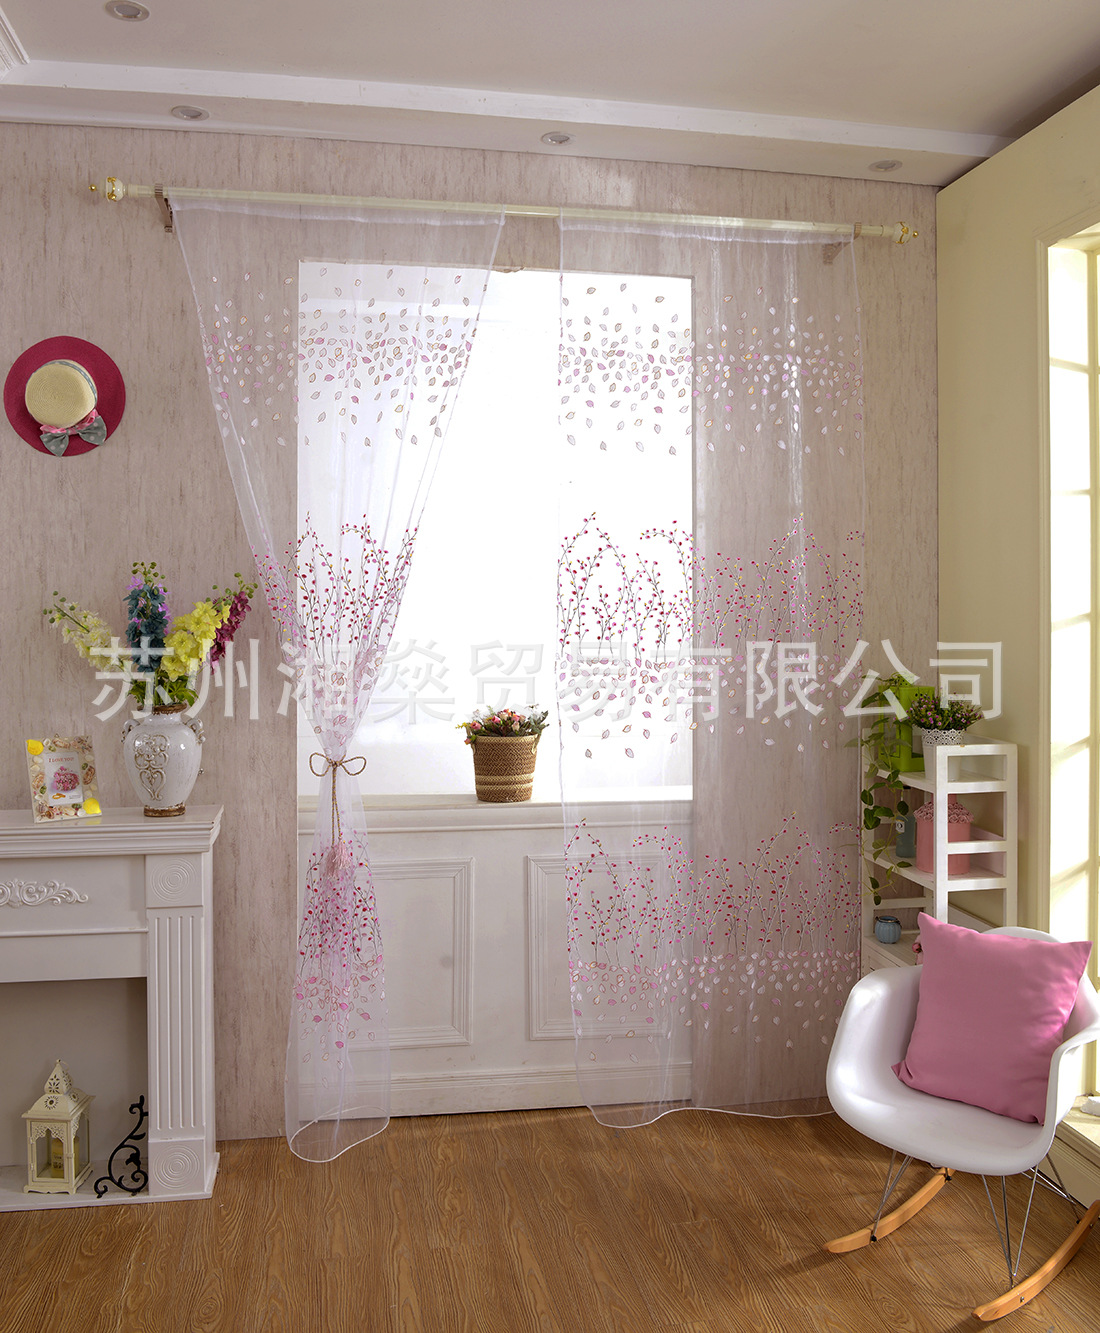 Compare prices on translucent curtains  online shopping/buy low ...